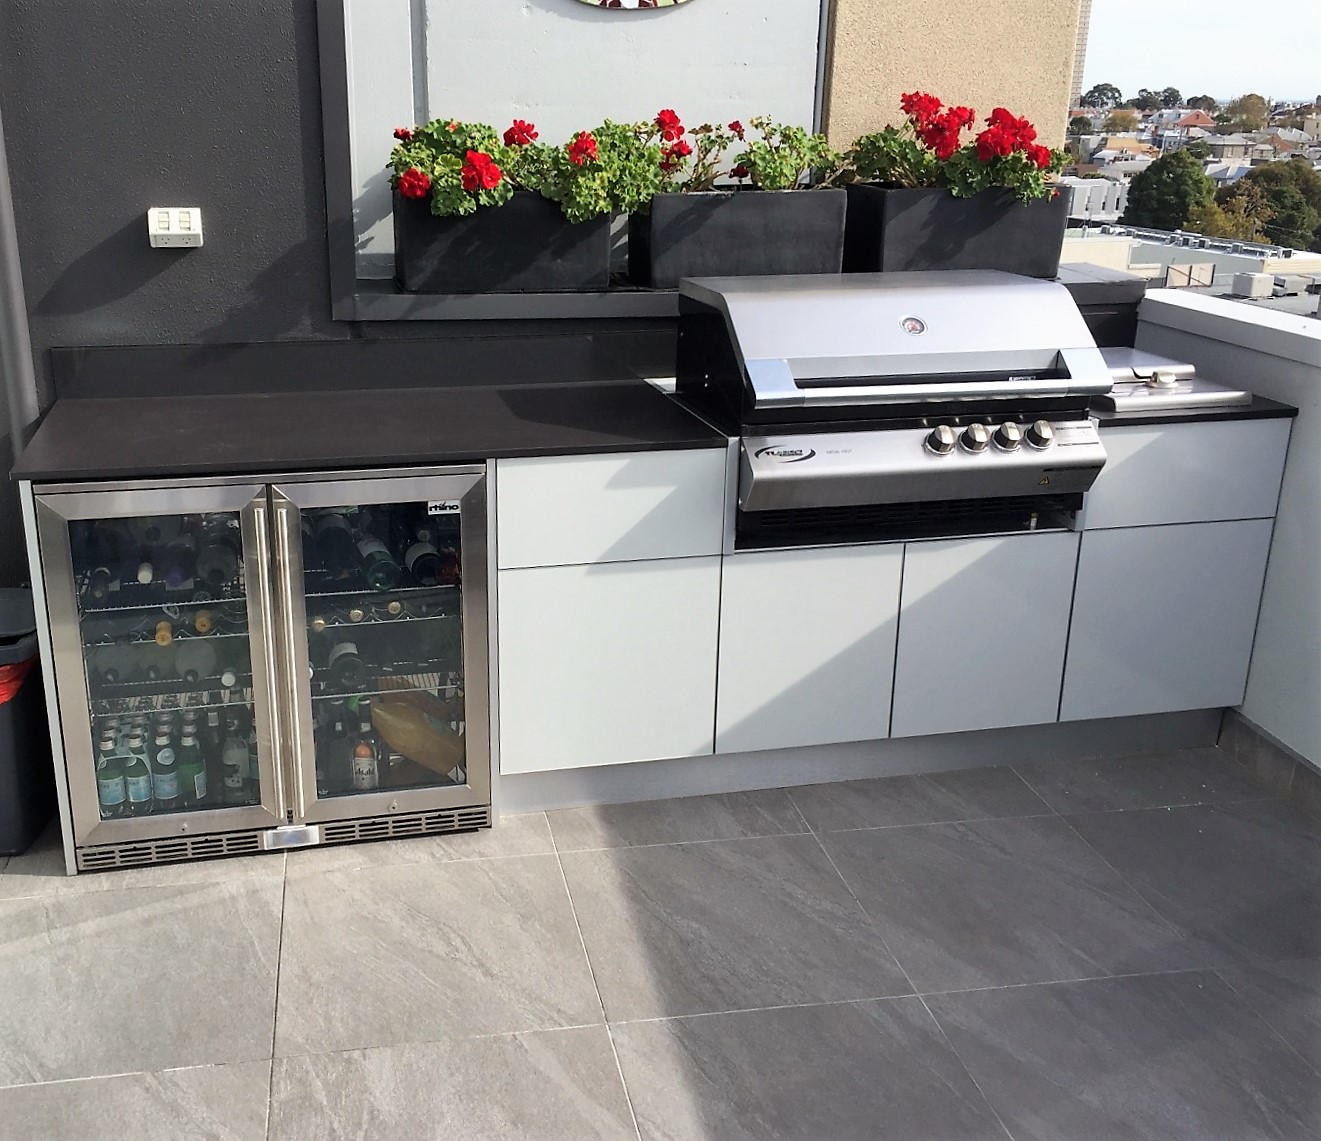 South Melbourne Rooftop Outdoor Kitchen